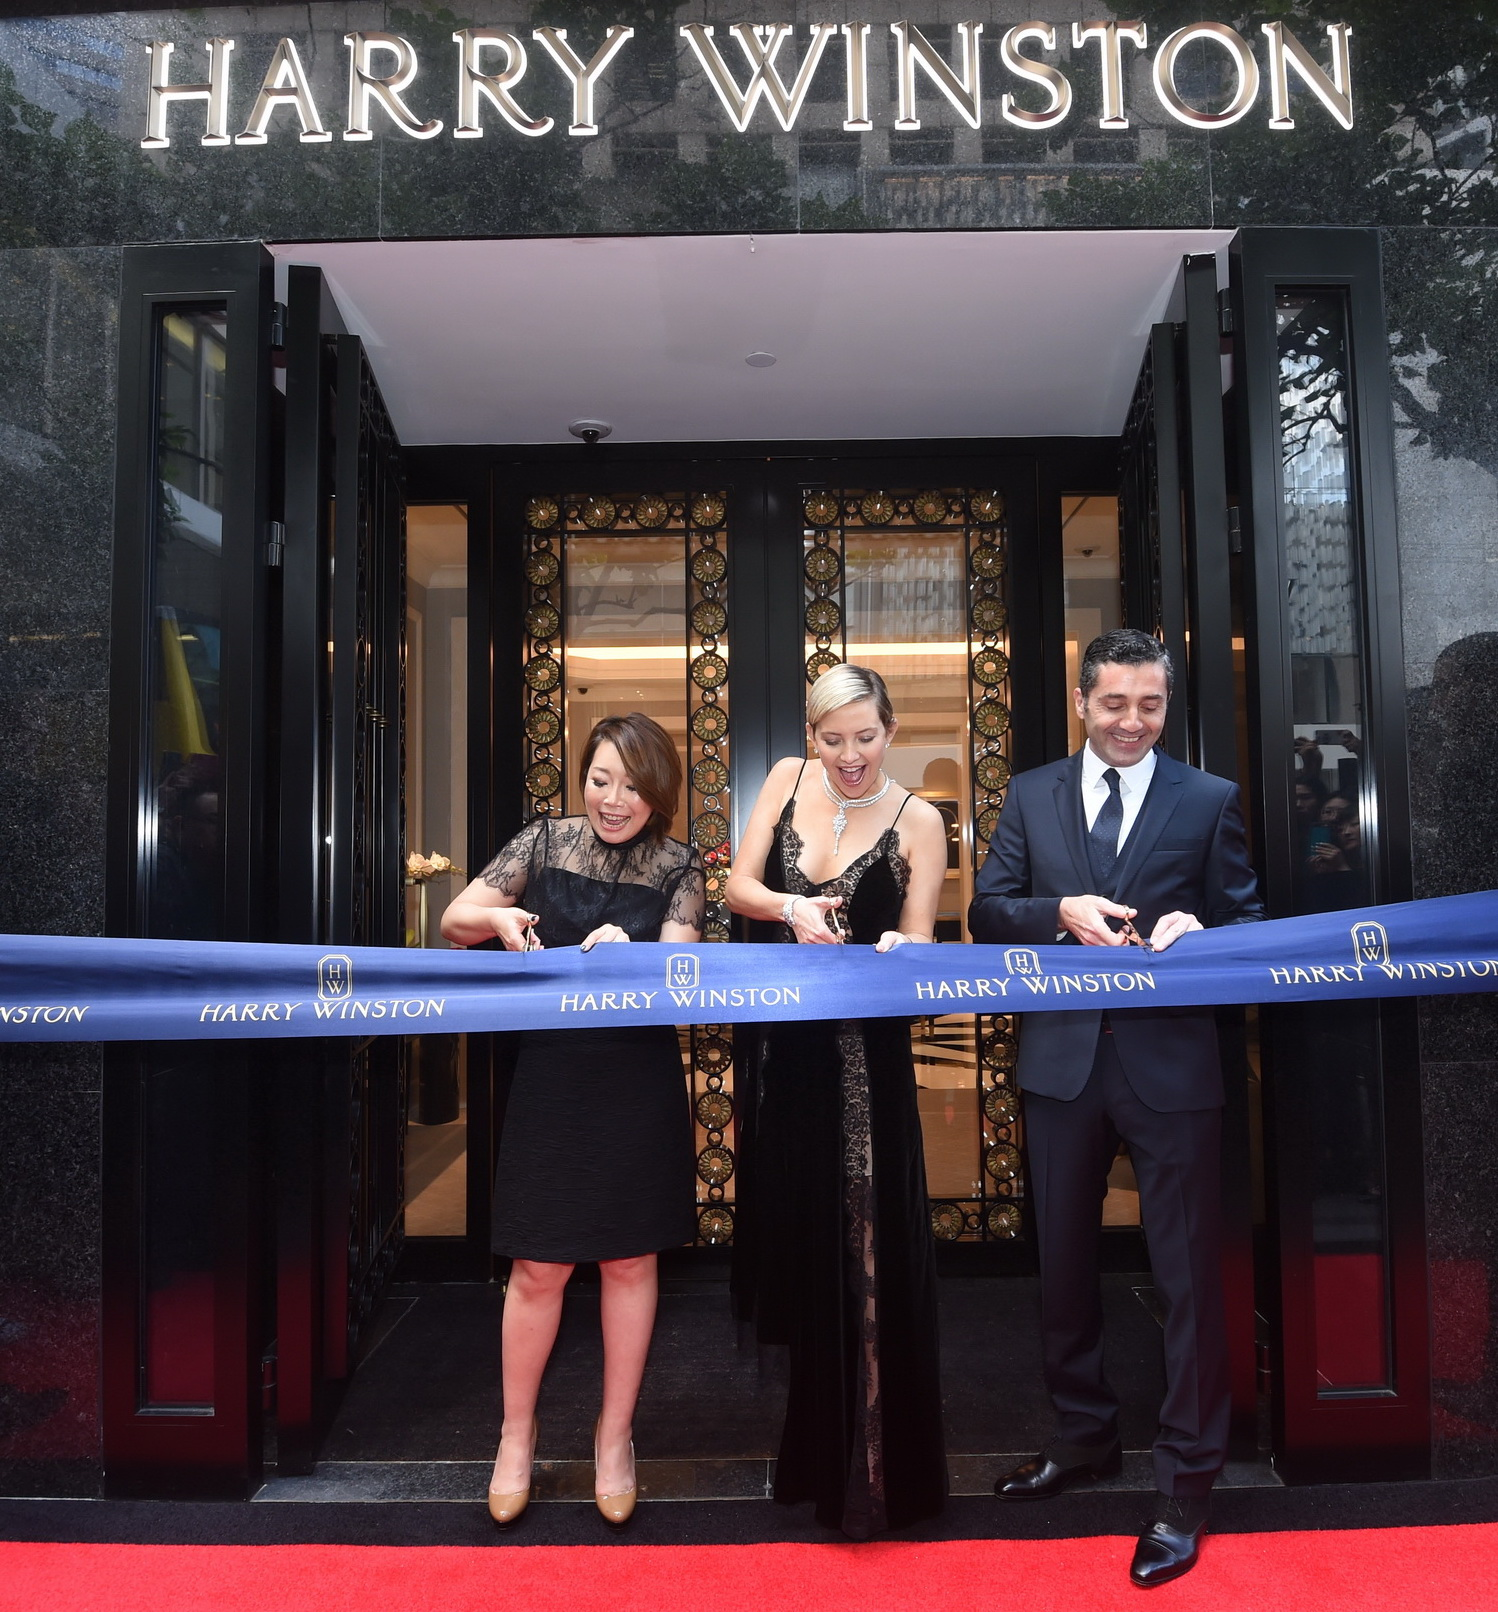 THE HOUSE OF HARRY WINSTON MANDARIN ORIENTAL HONG KONG SALON GRAND OPENING